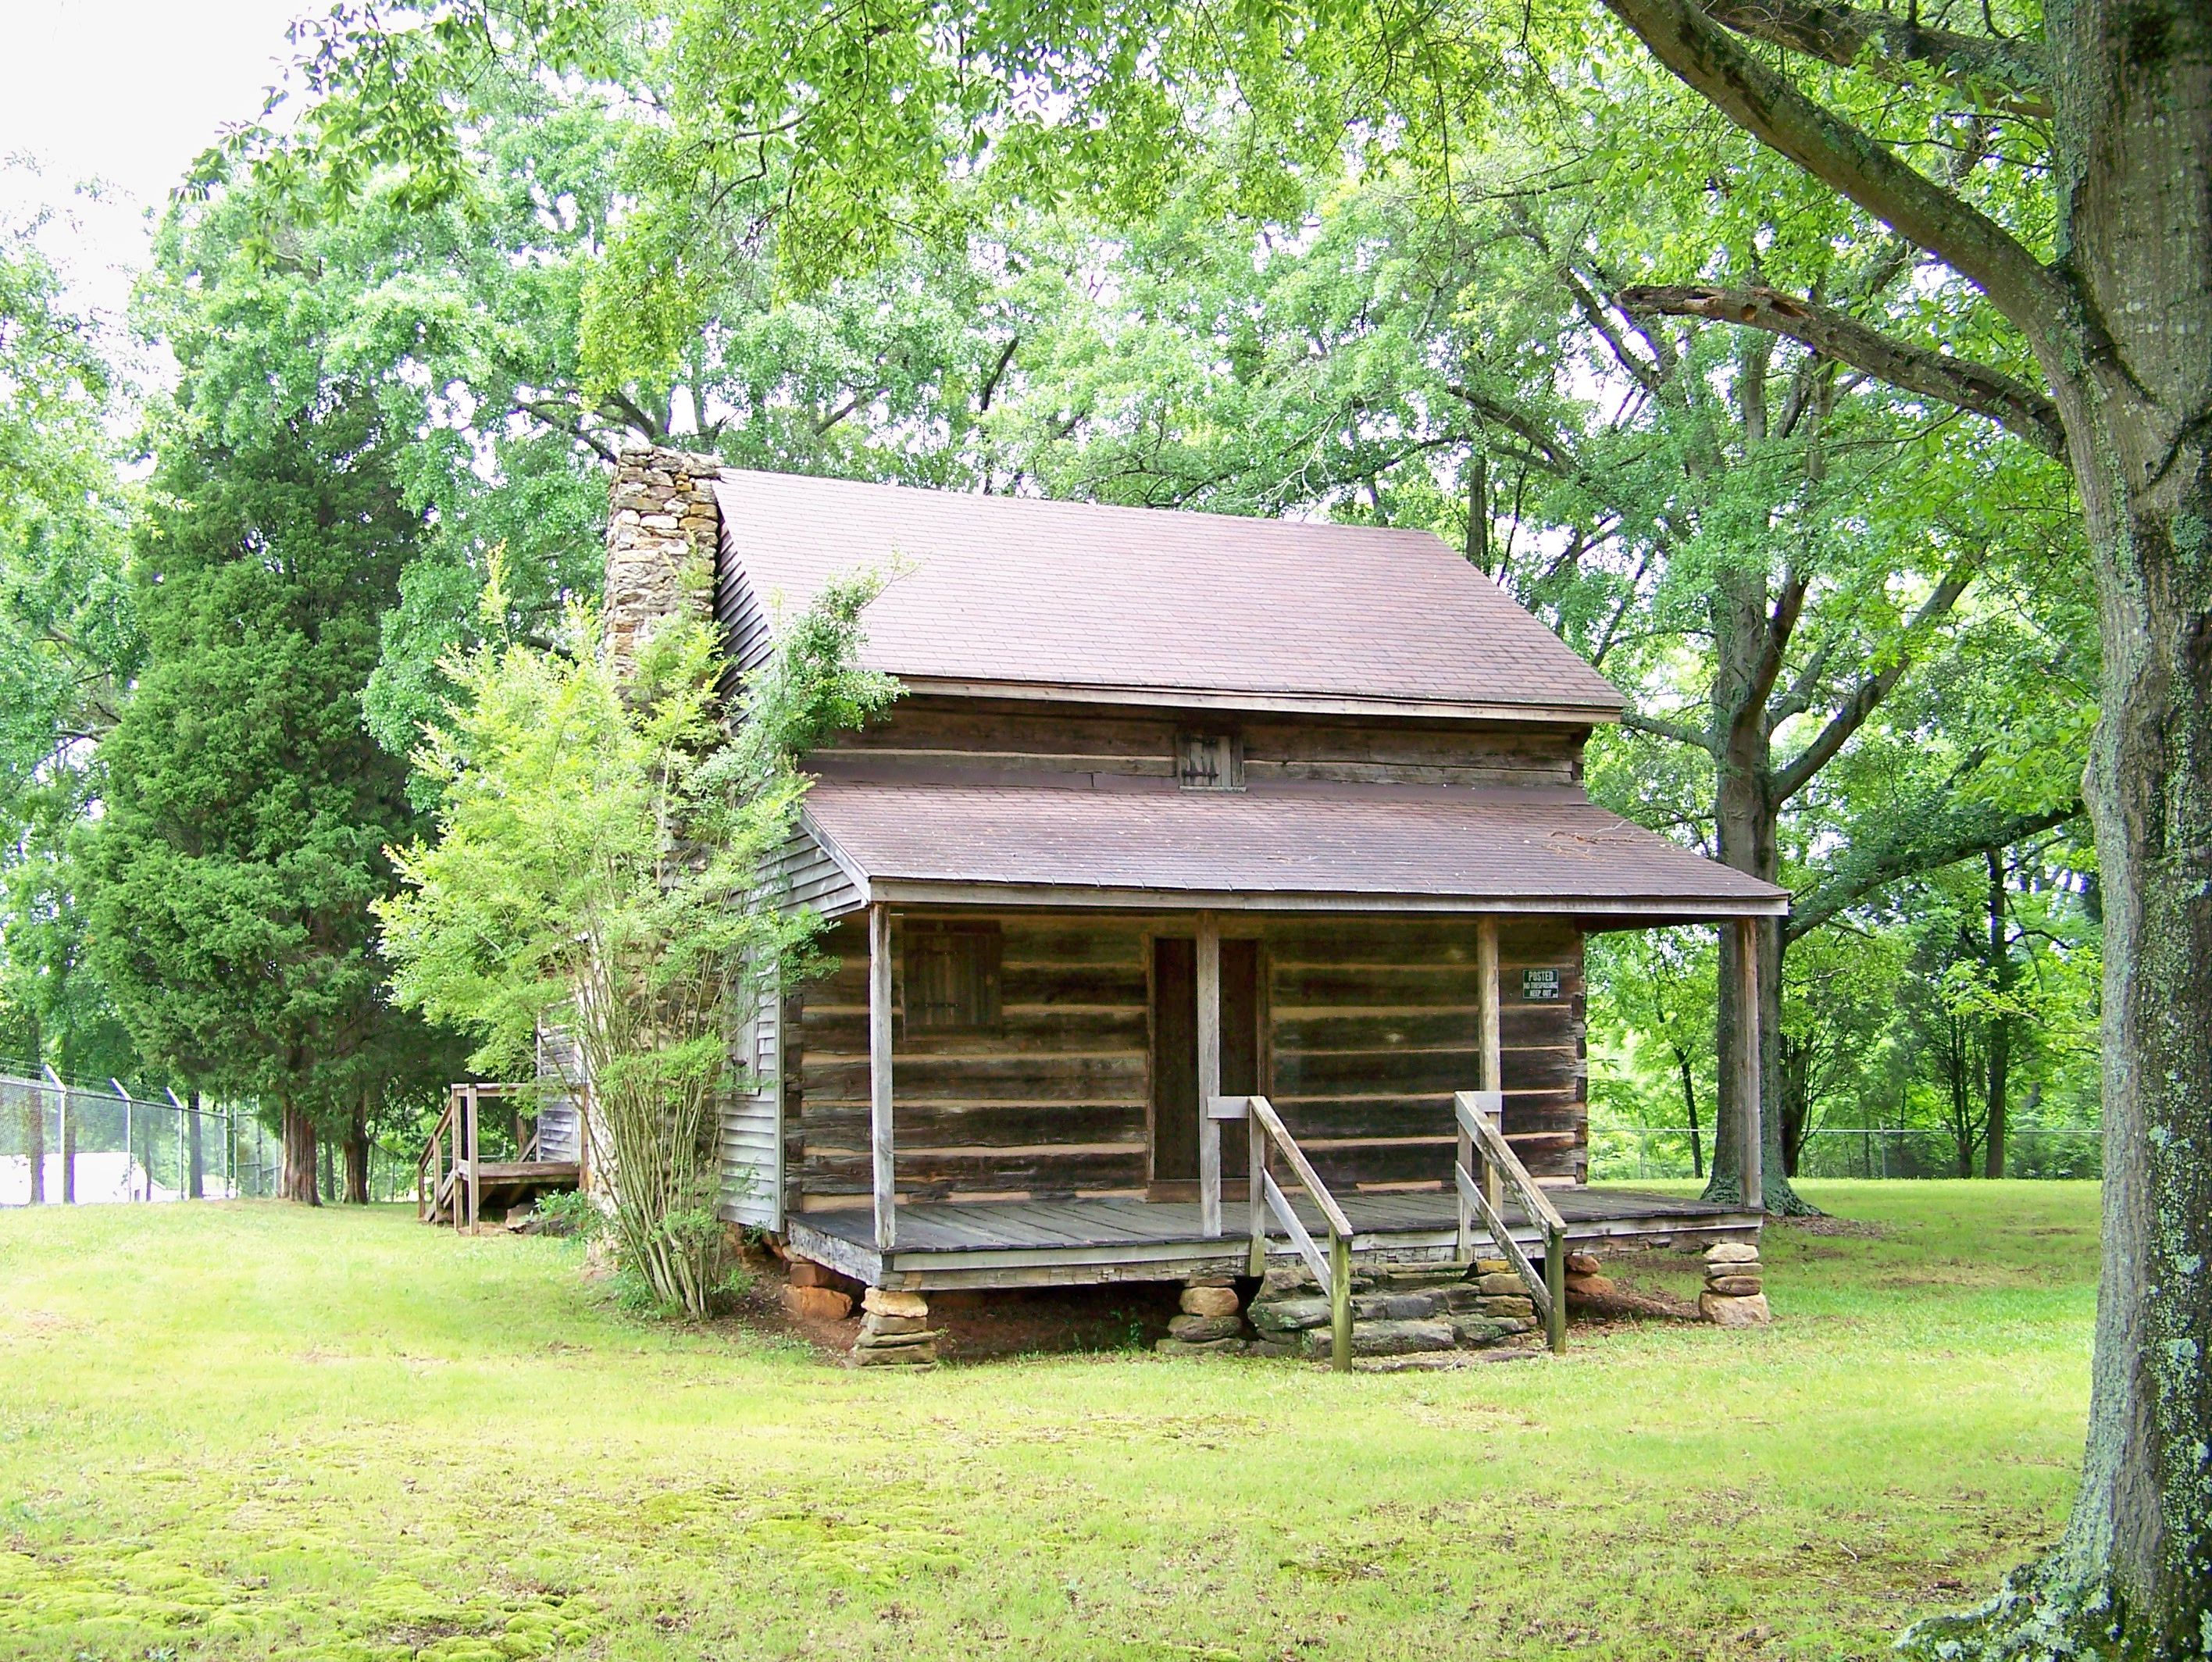 This historic log home was constructed in the late 18th century by a veteran of the American Revolution.